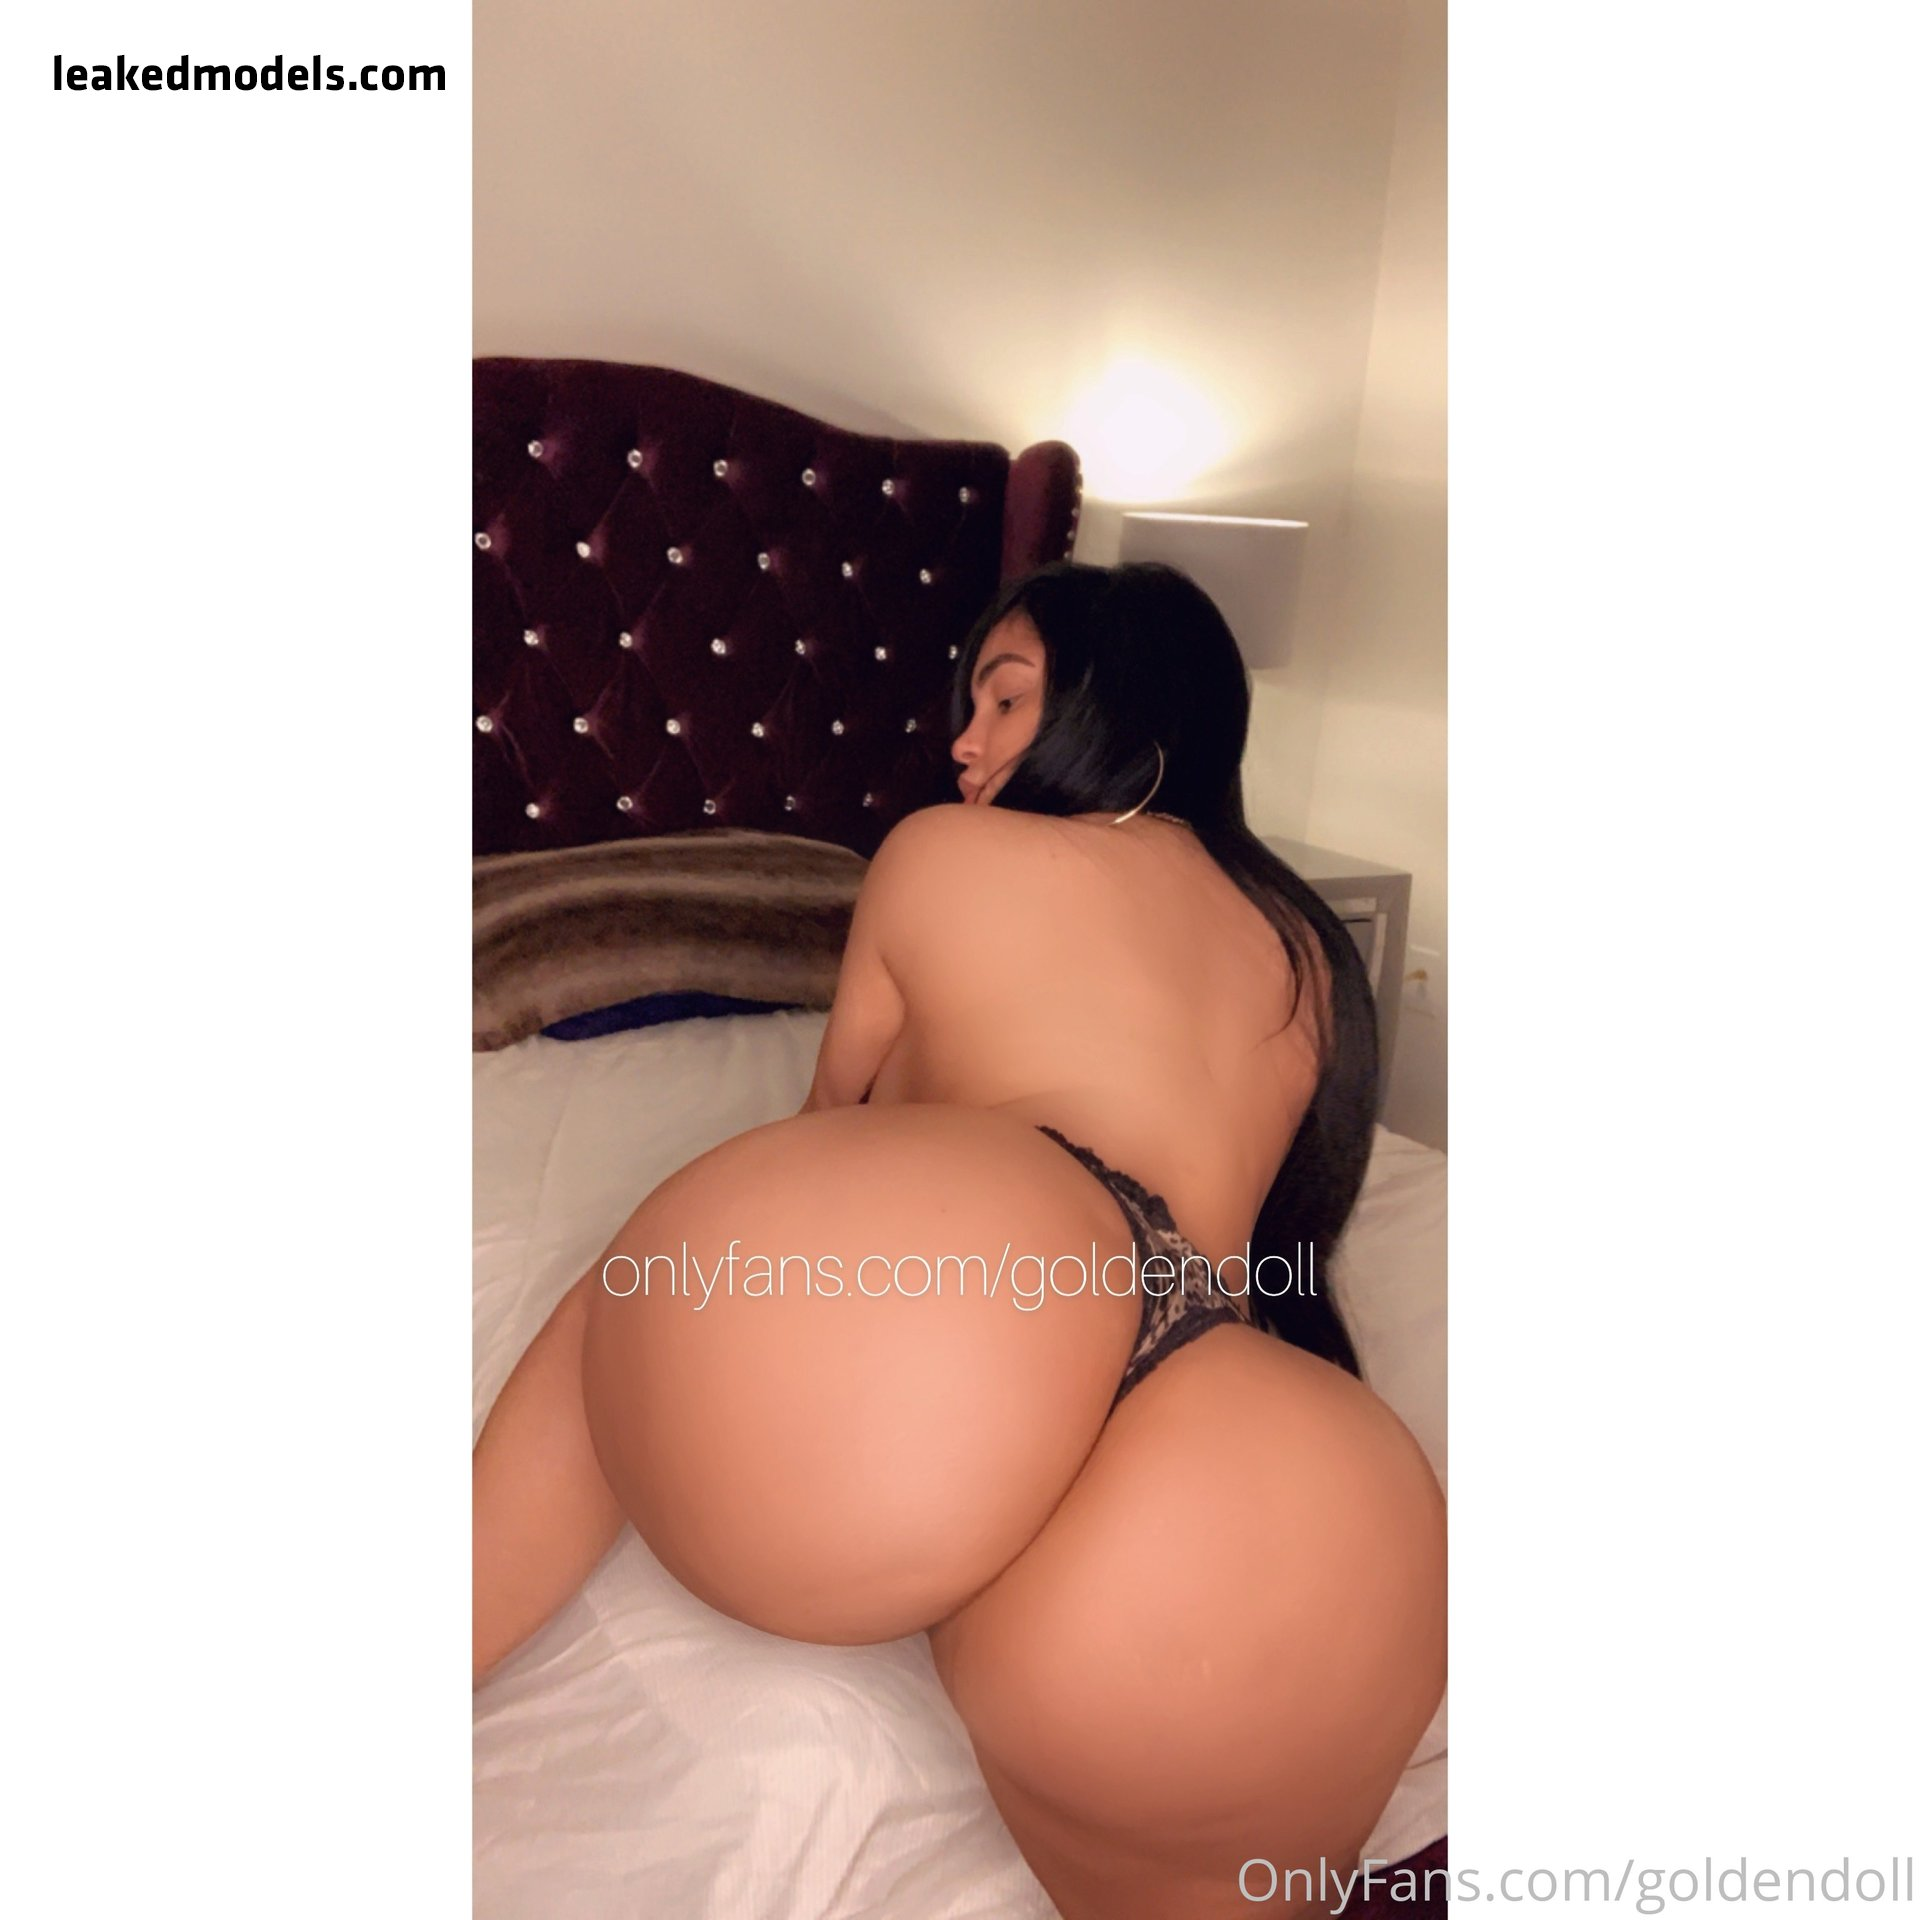 goldendoll OnlyFans Nude Leaks (30 Photos)